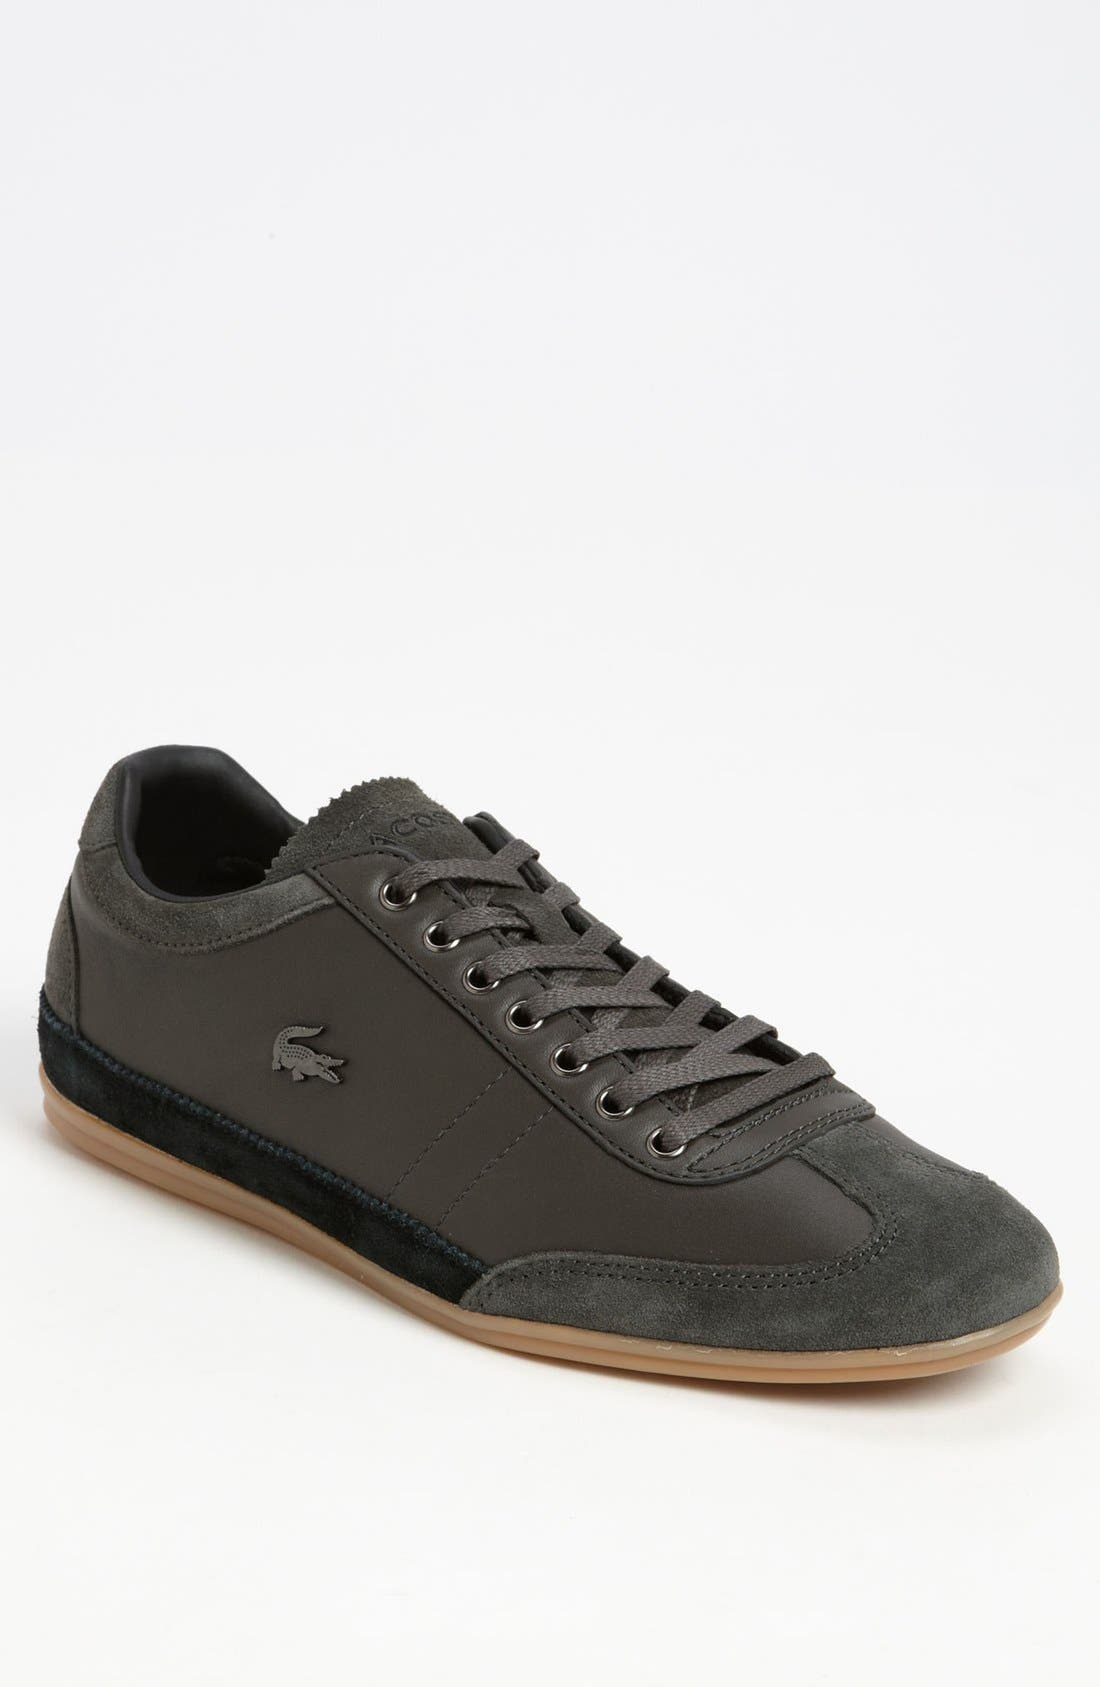 Alternate Image 1 Selected - Lacoste 'Misano 15' Sneaker (Men)